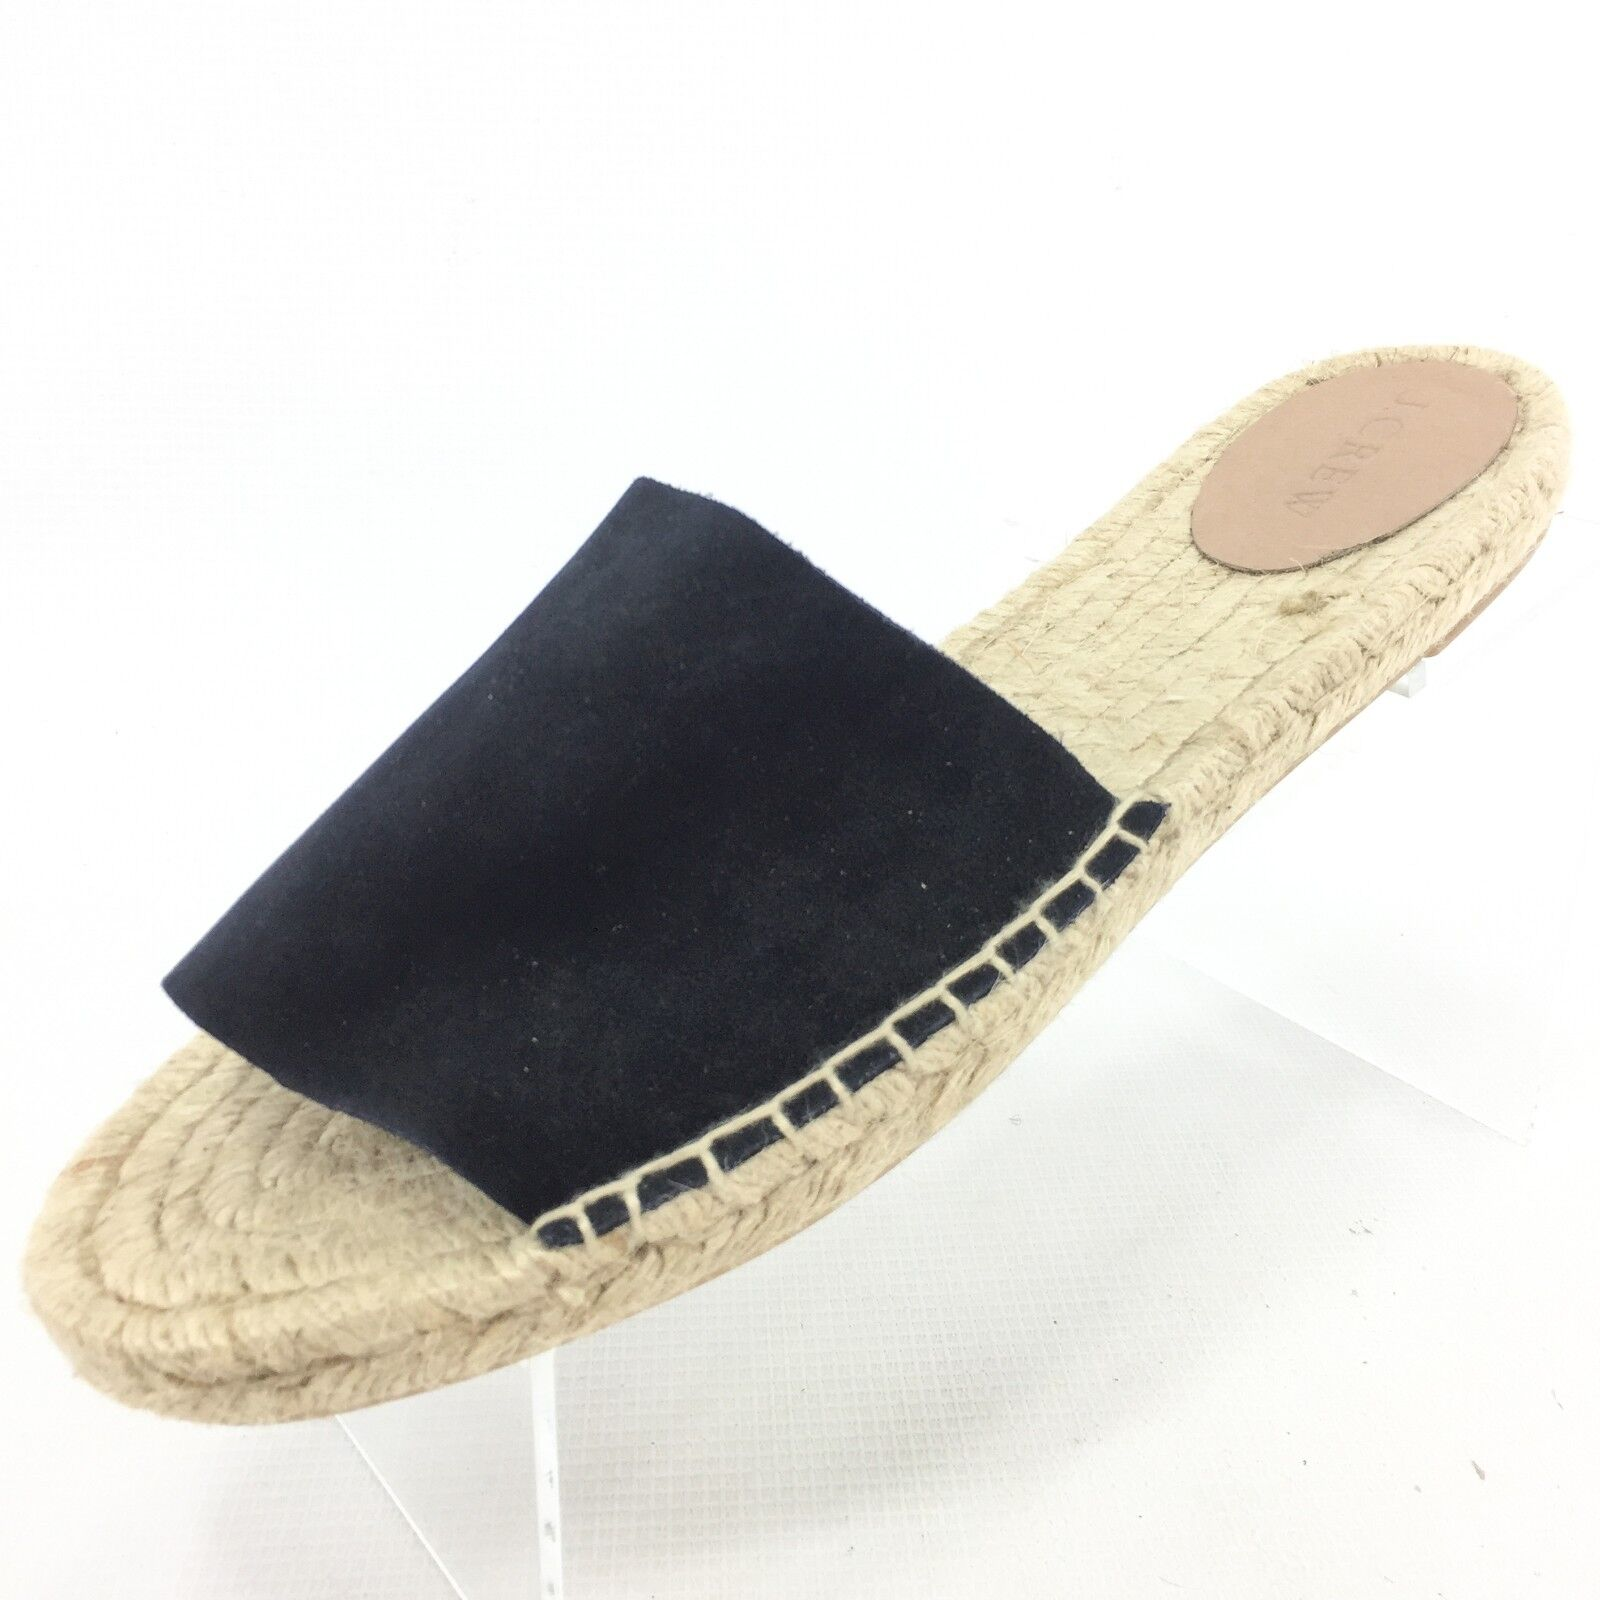 J.CREW Valencia bluee Suede Espadrilles Slides 10 Made in Spain NEW